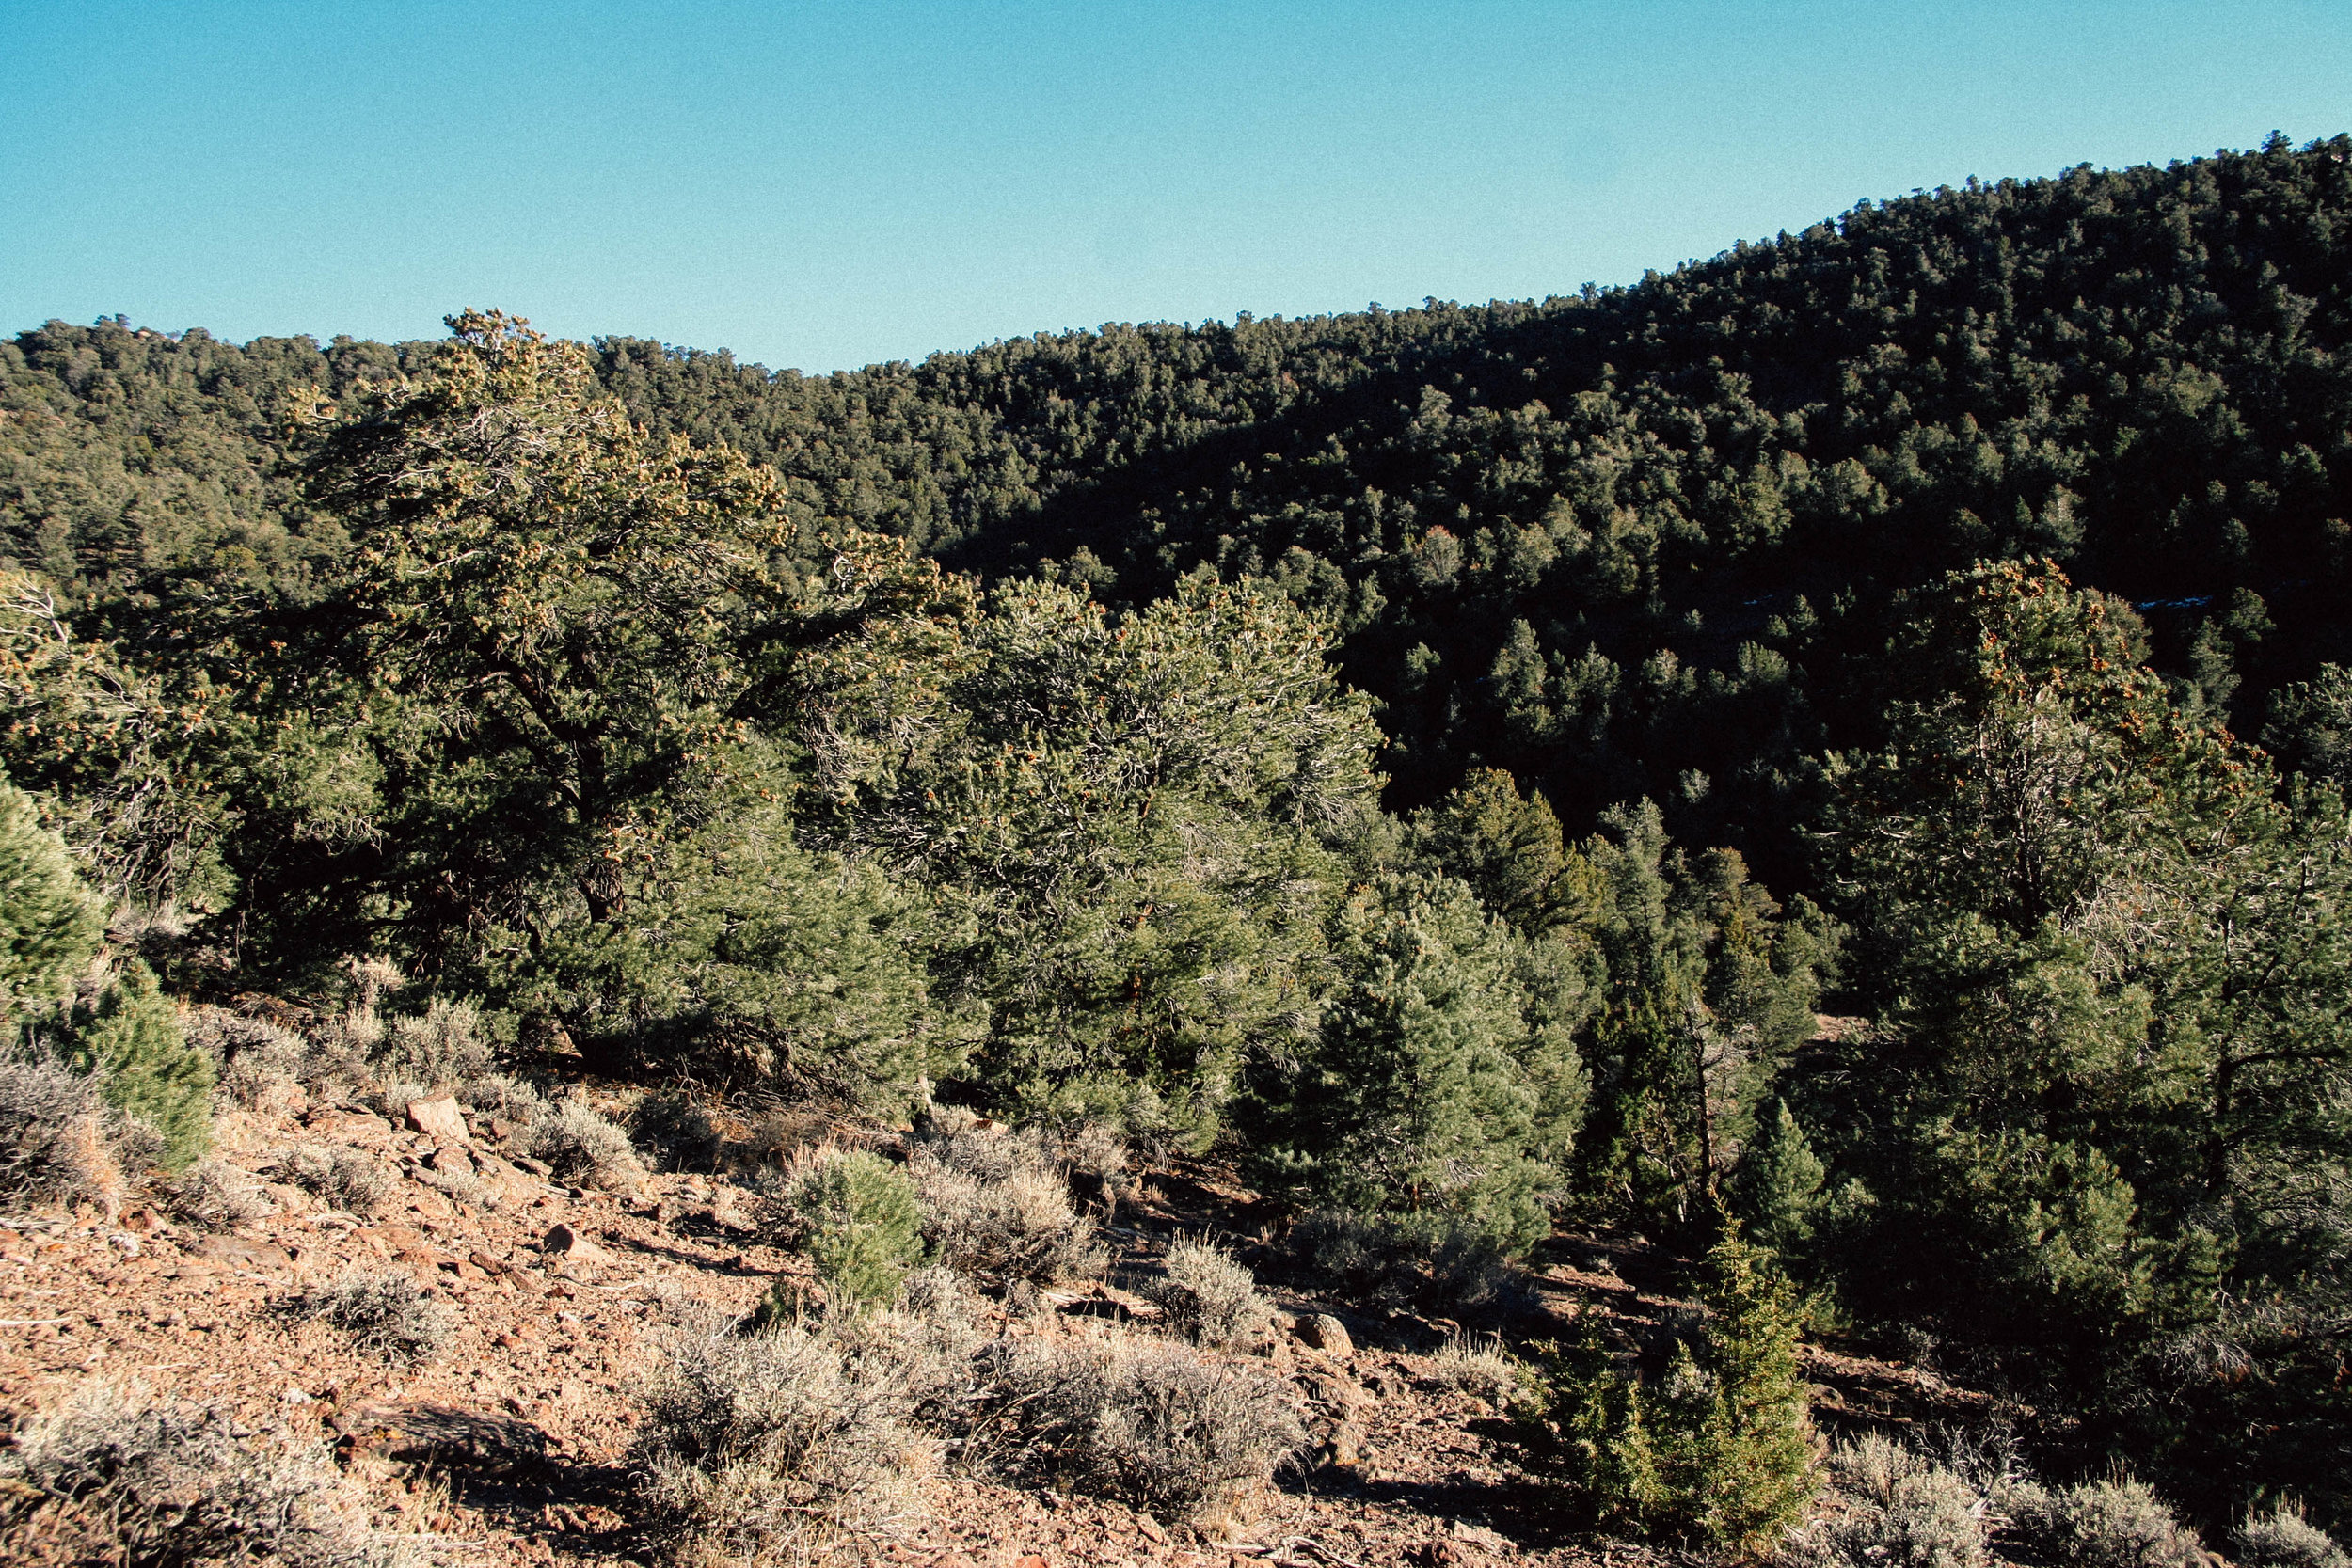 Juniper Piñon woodland, Nevada. 2017.